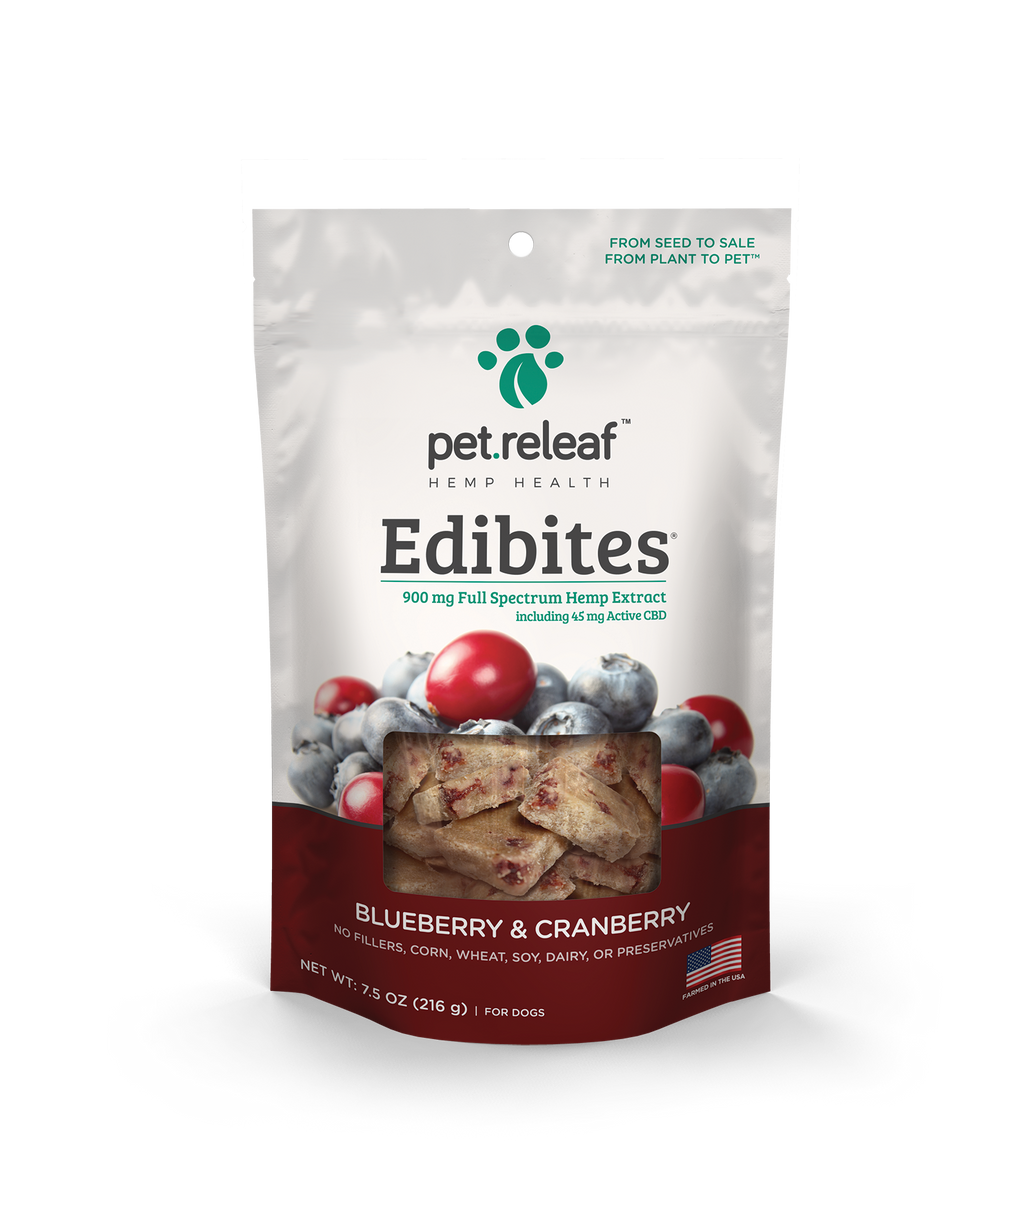 Pet Releaf Edibites Crunchy Blueberry and Cranberry 7.5oz bag